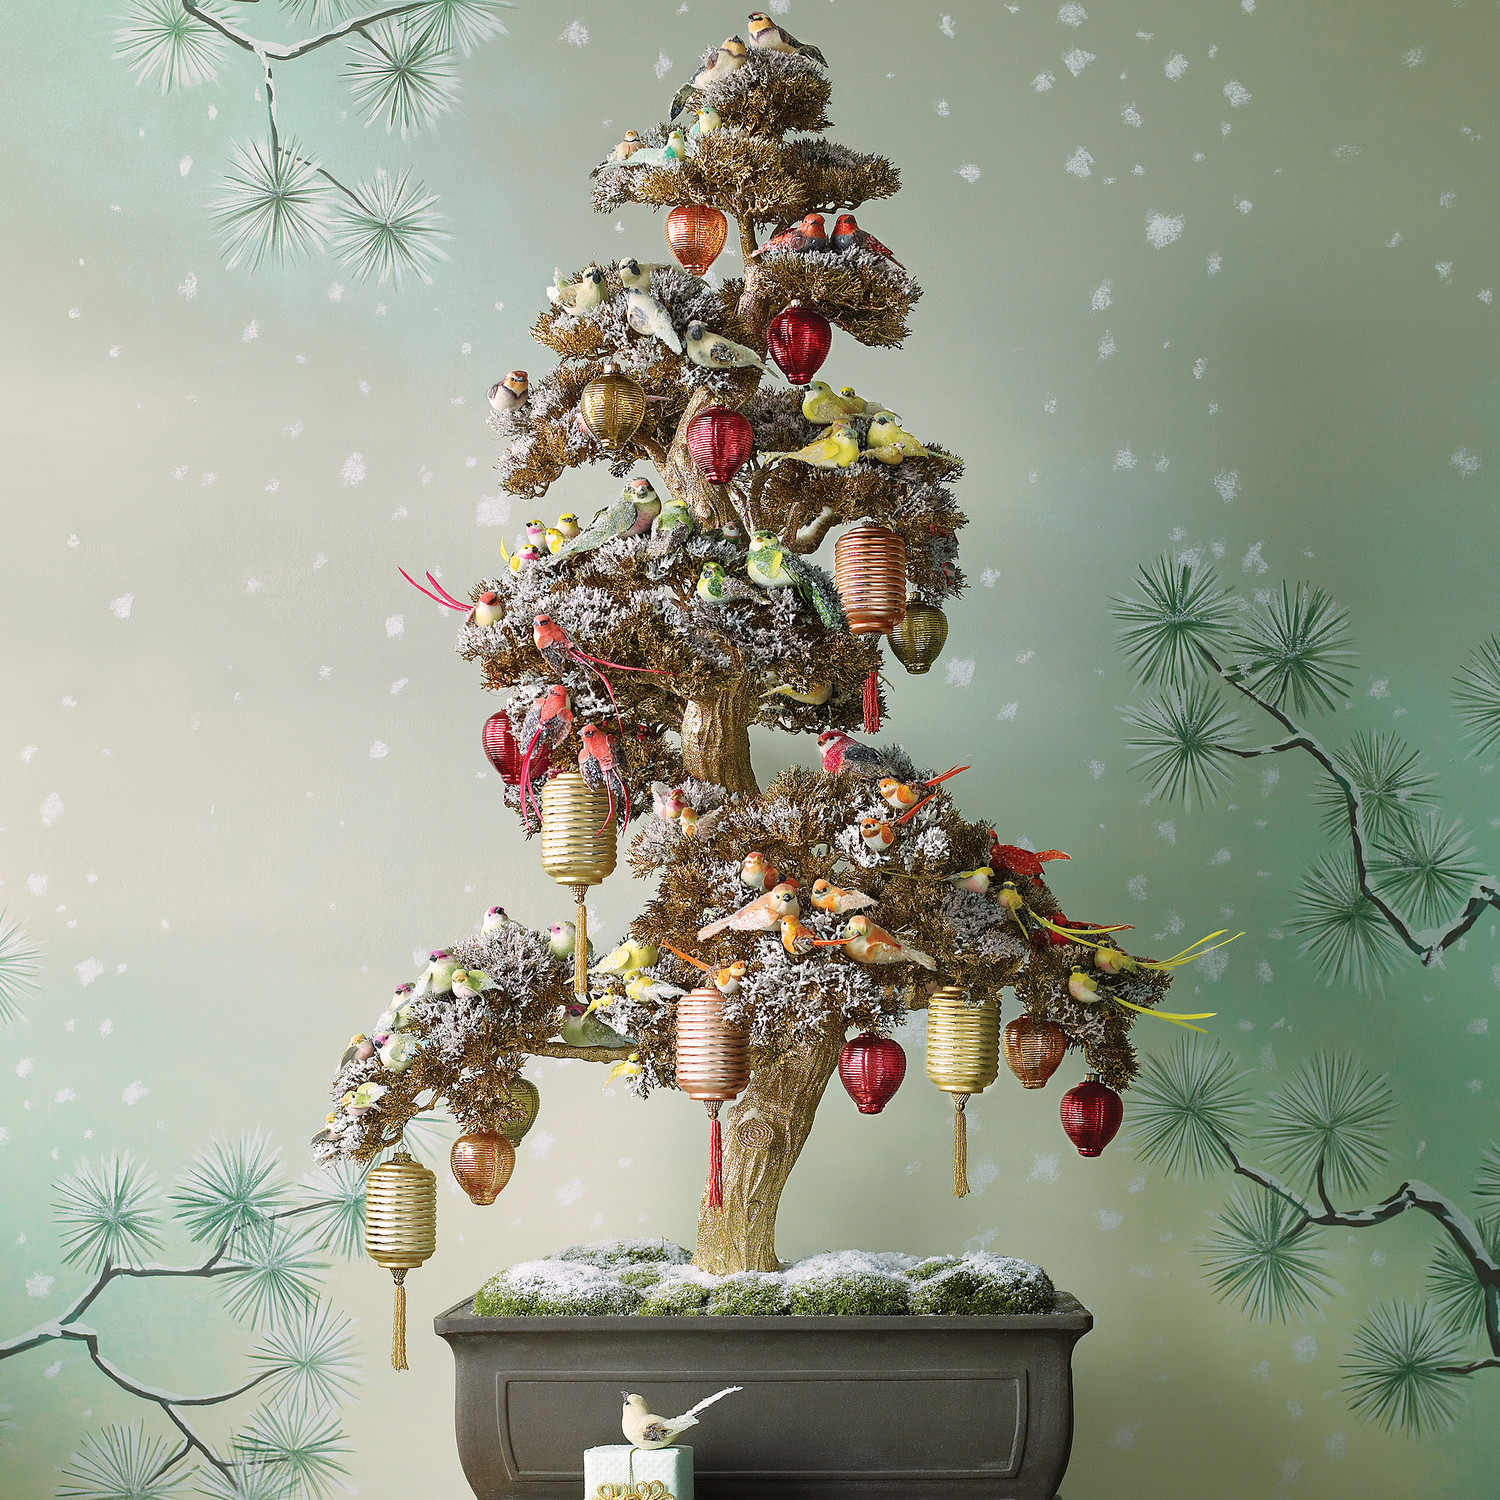 28 creative christmas tree decorating ideas martha stewart - Green Christmas Decorations